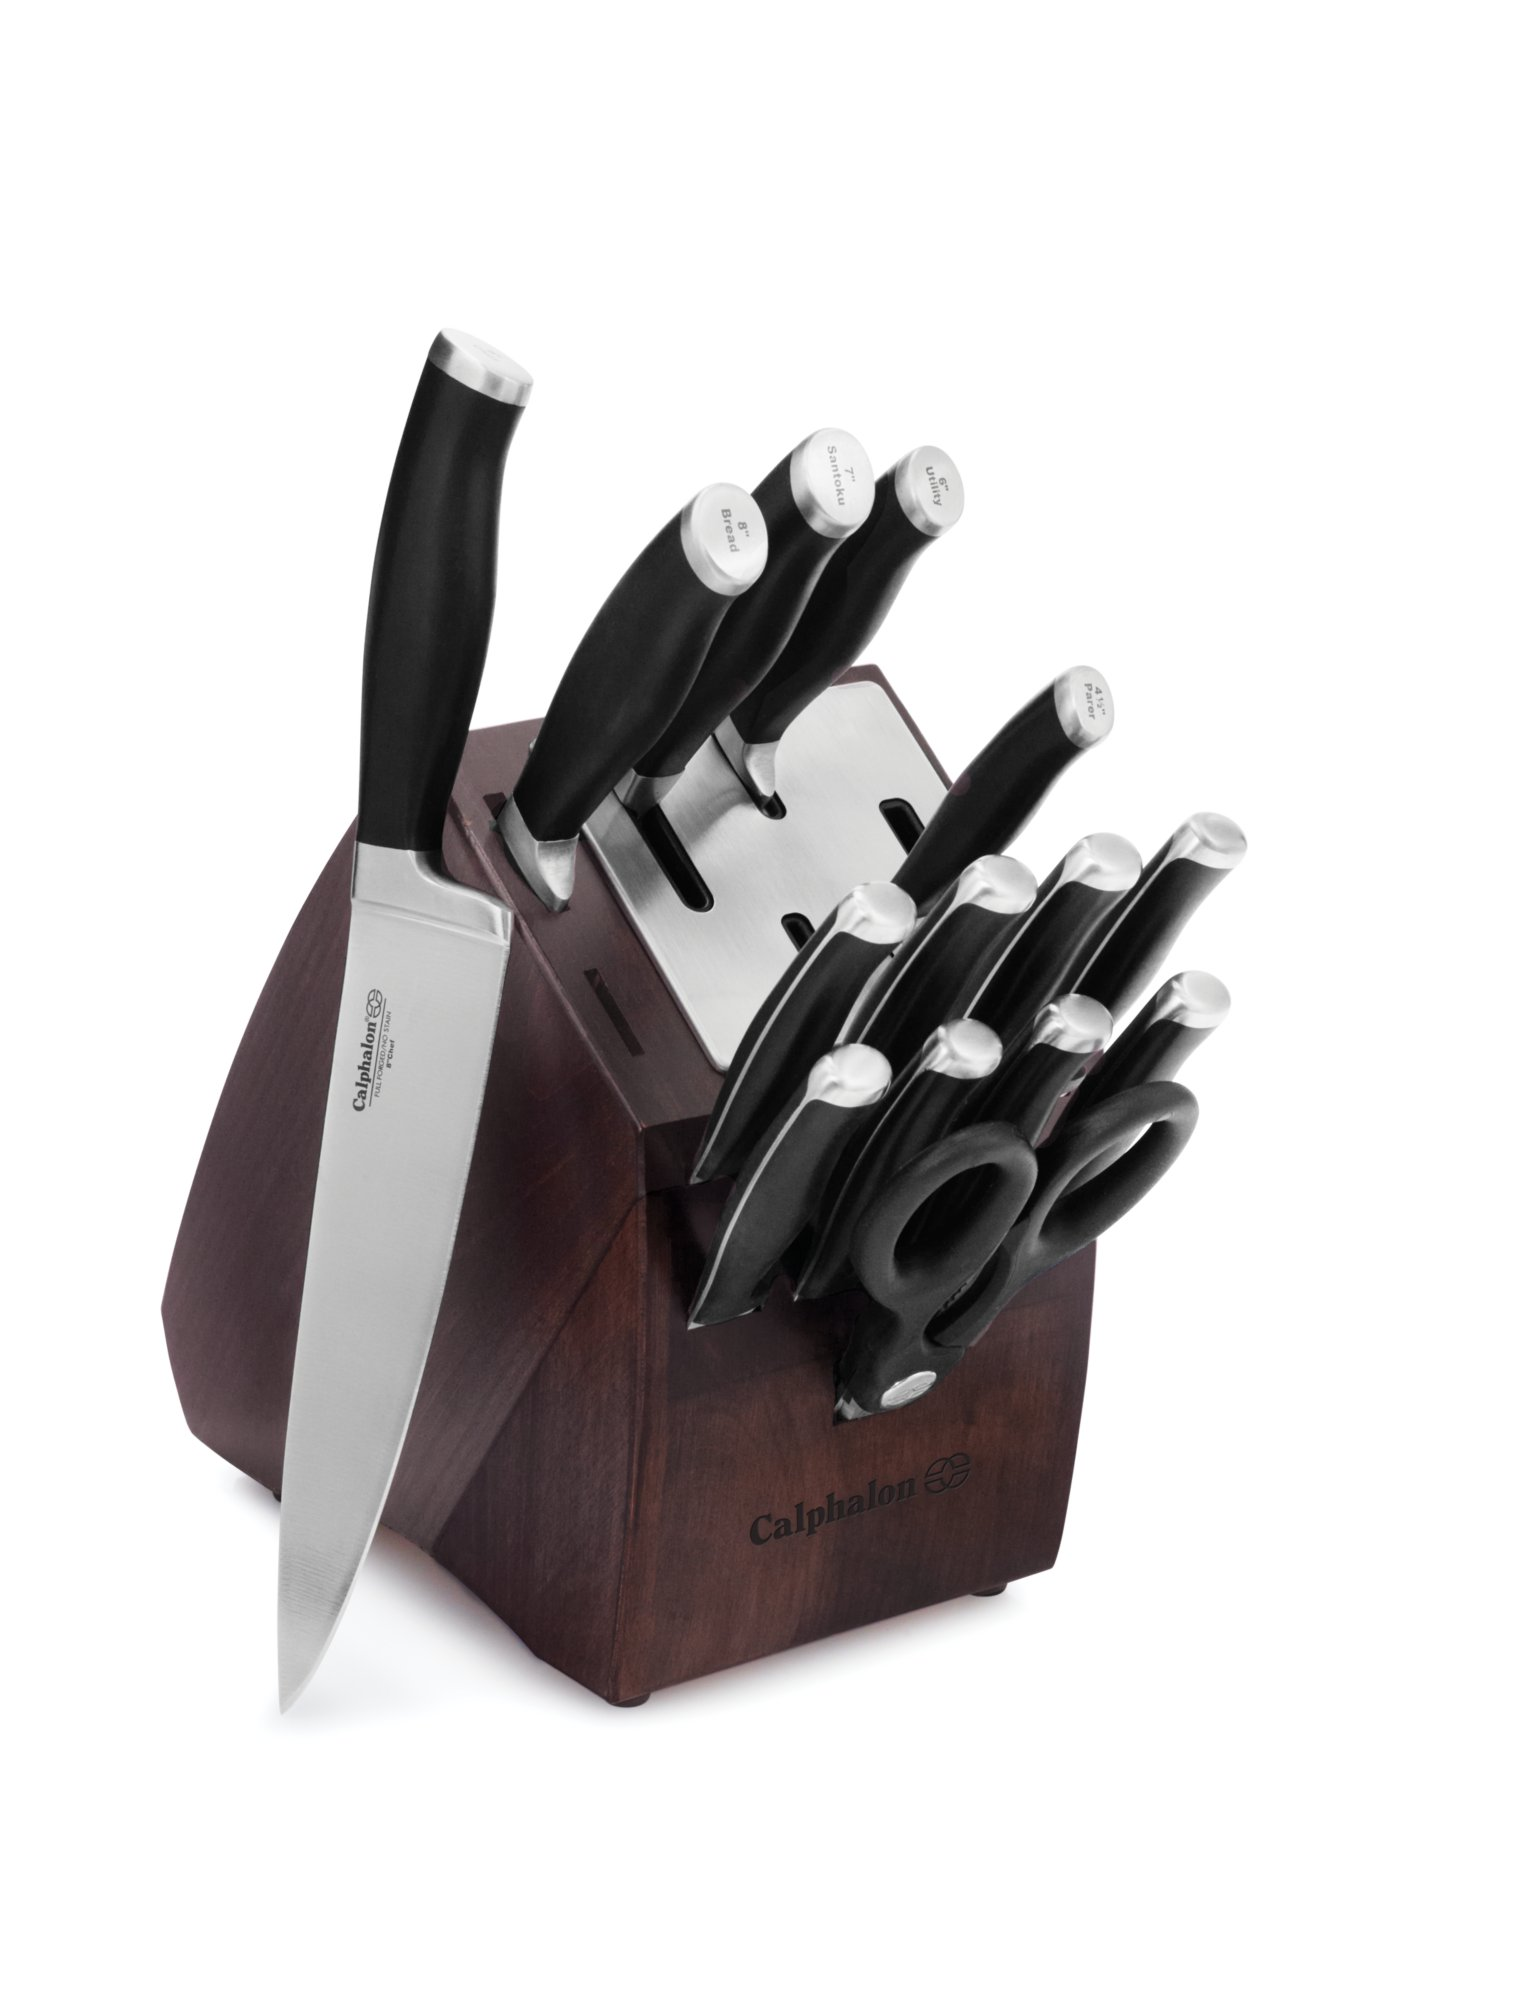 Calphalon Contemporary Self-Sharpening 15-pc. Cutlery Set with SharpIN Technology